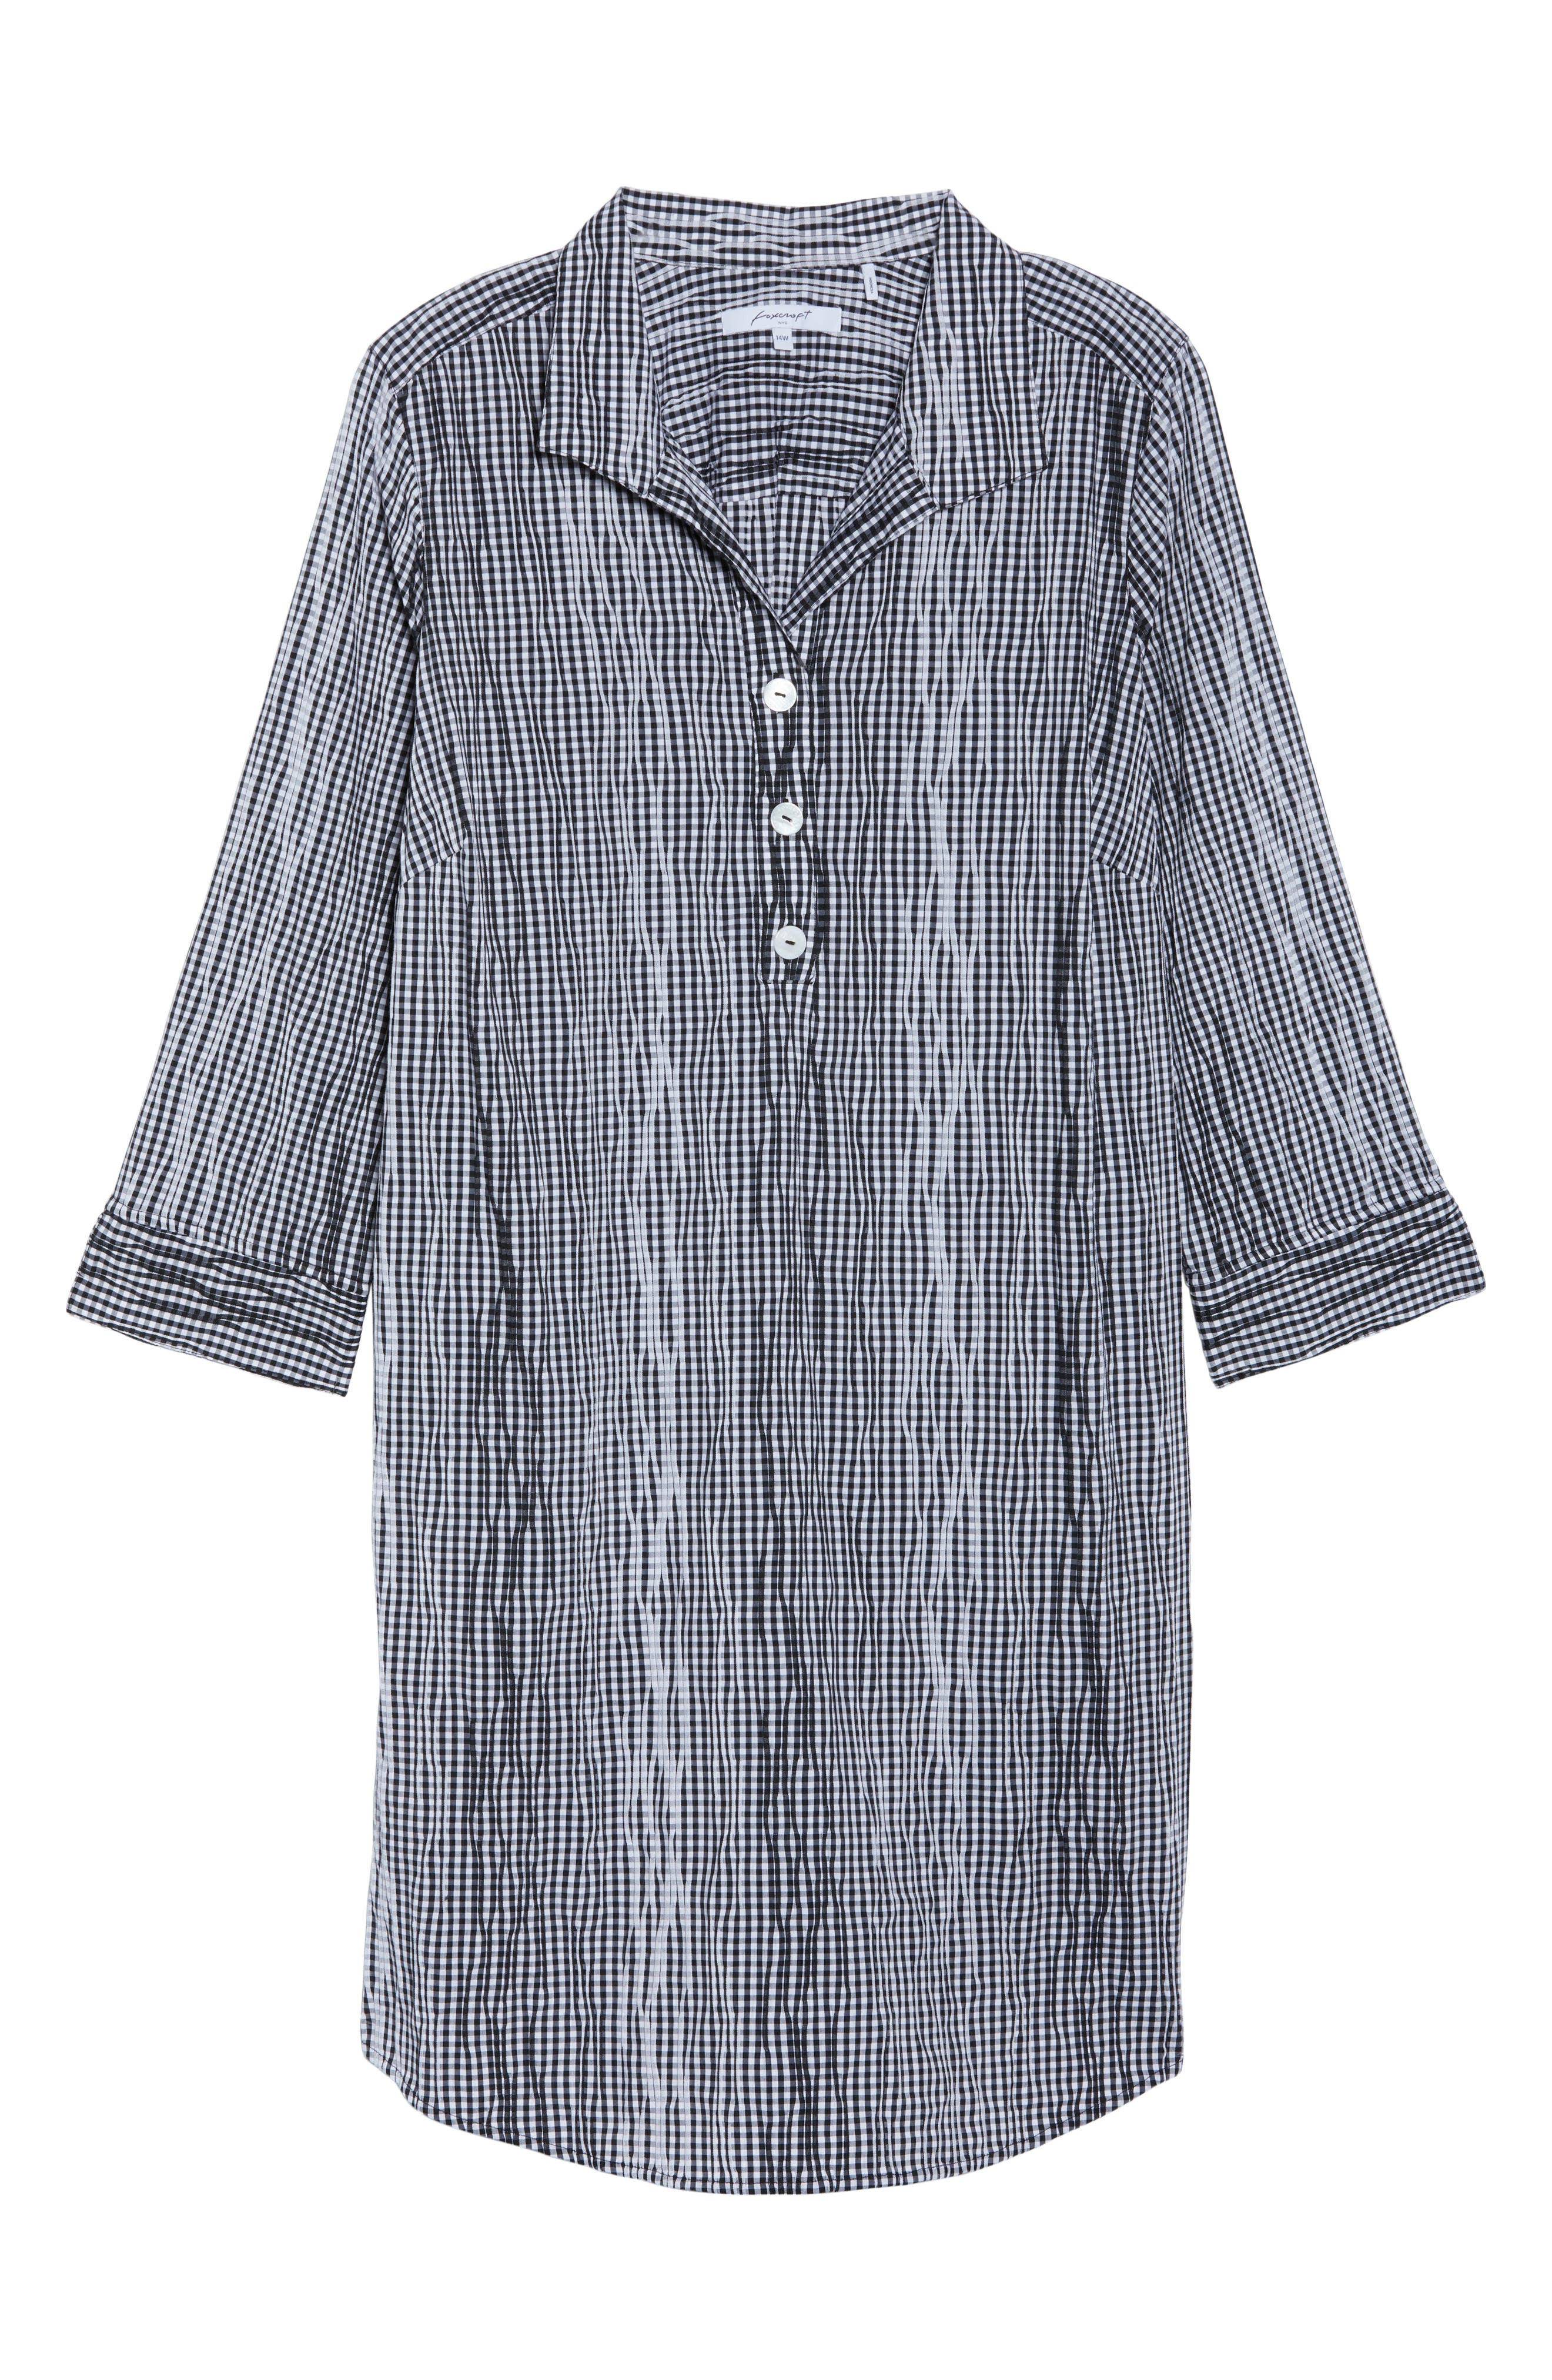 Miri Crinkle Gingham Shirtdress,                             Alternate thumbnail 6, color,                             001